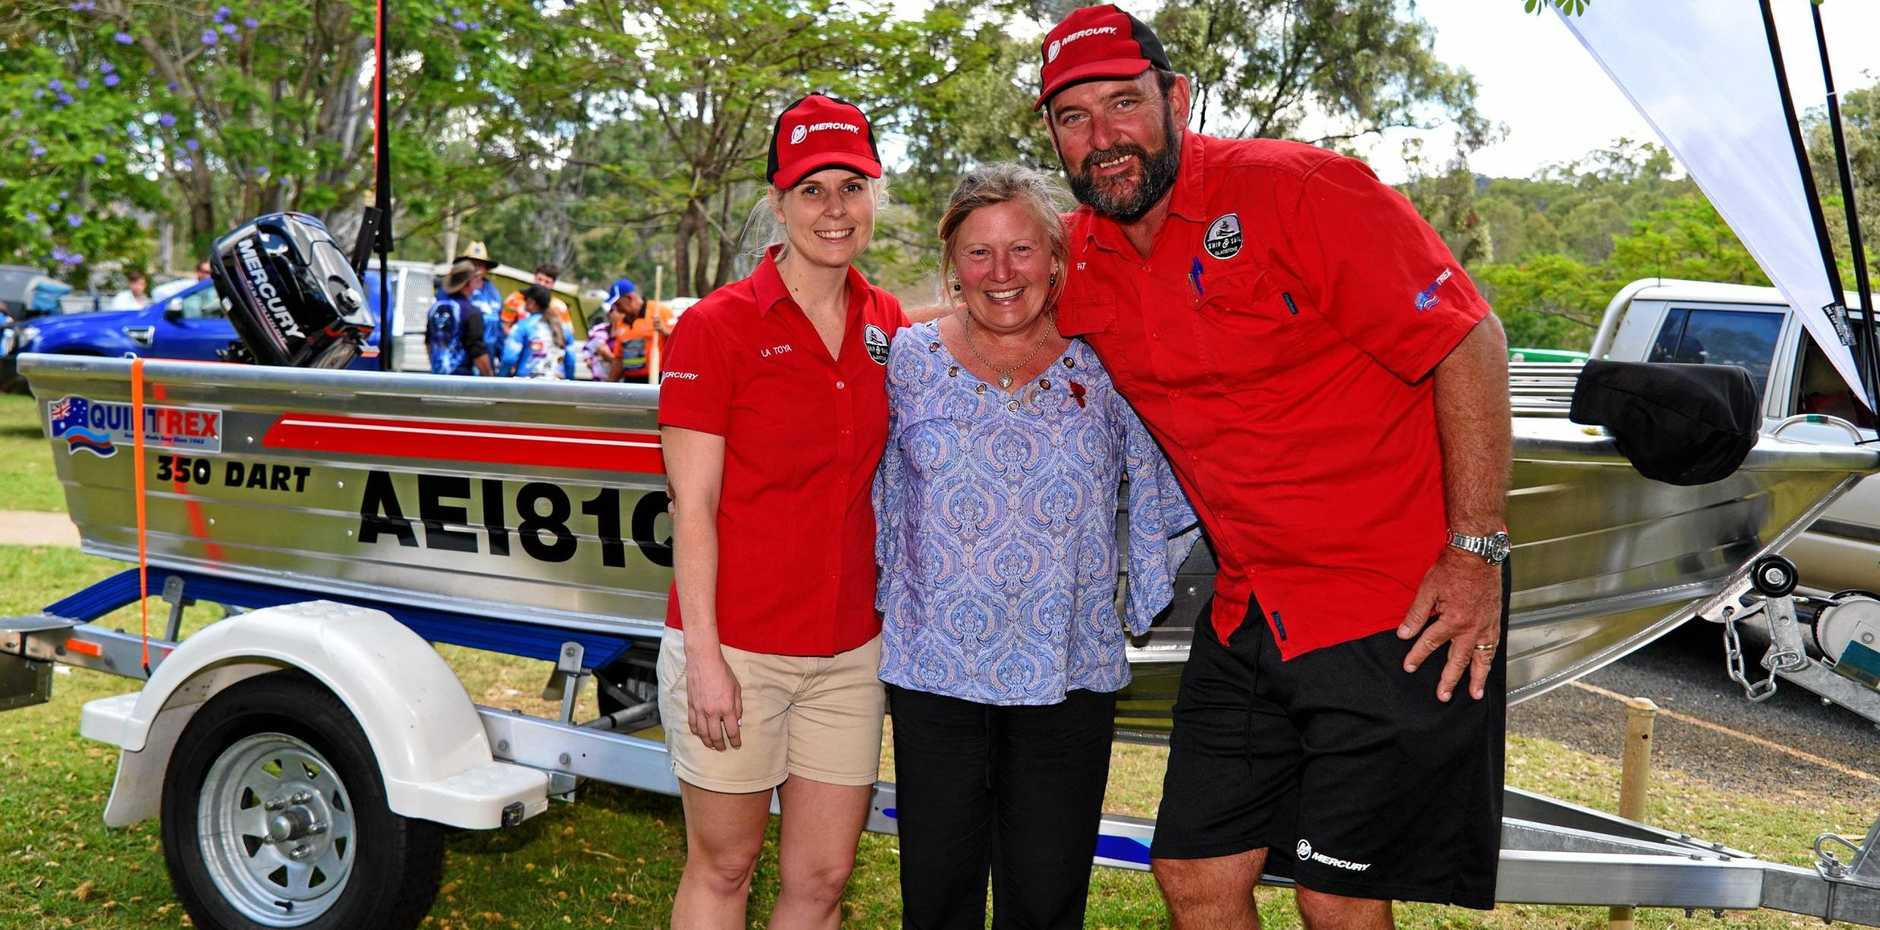 Ship and Sails' La Toya Reynolds and Patrick Laws with Leesa Giles who won the major prize, a 350 Quintrex Dart.